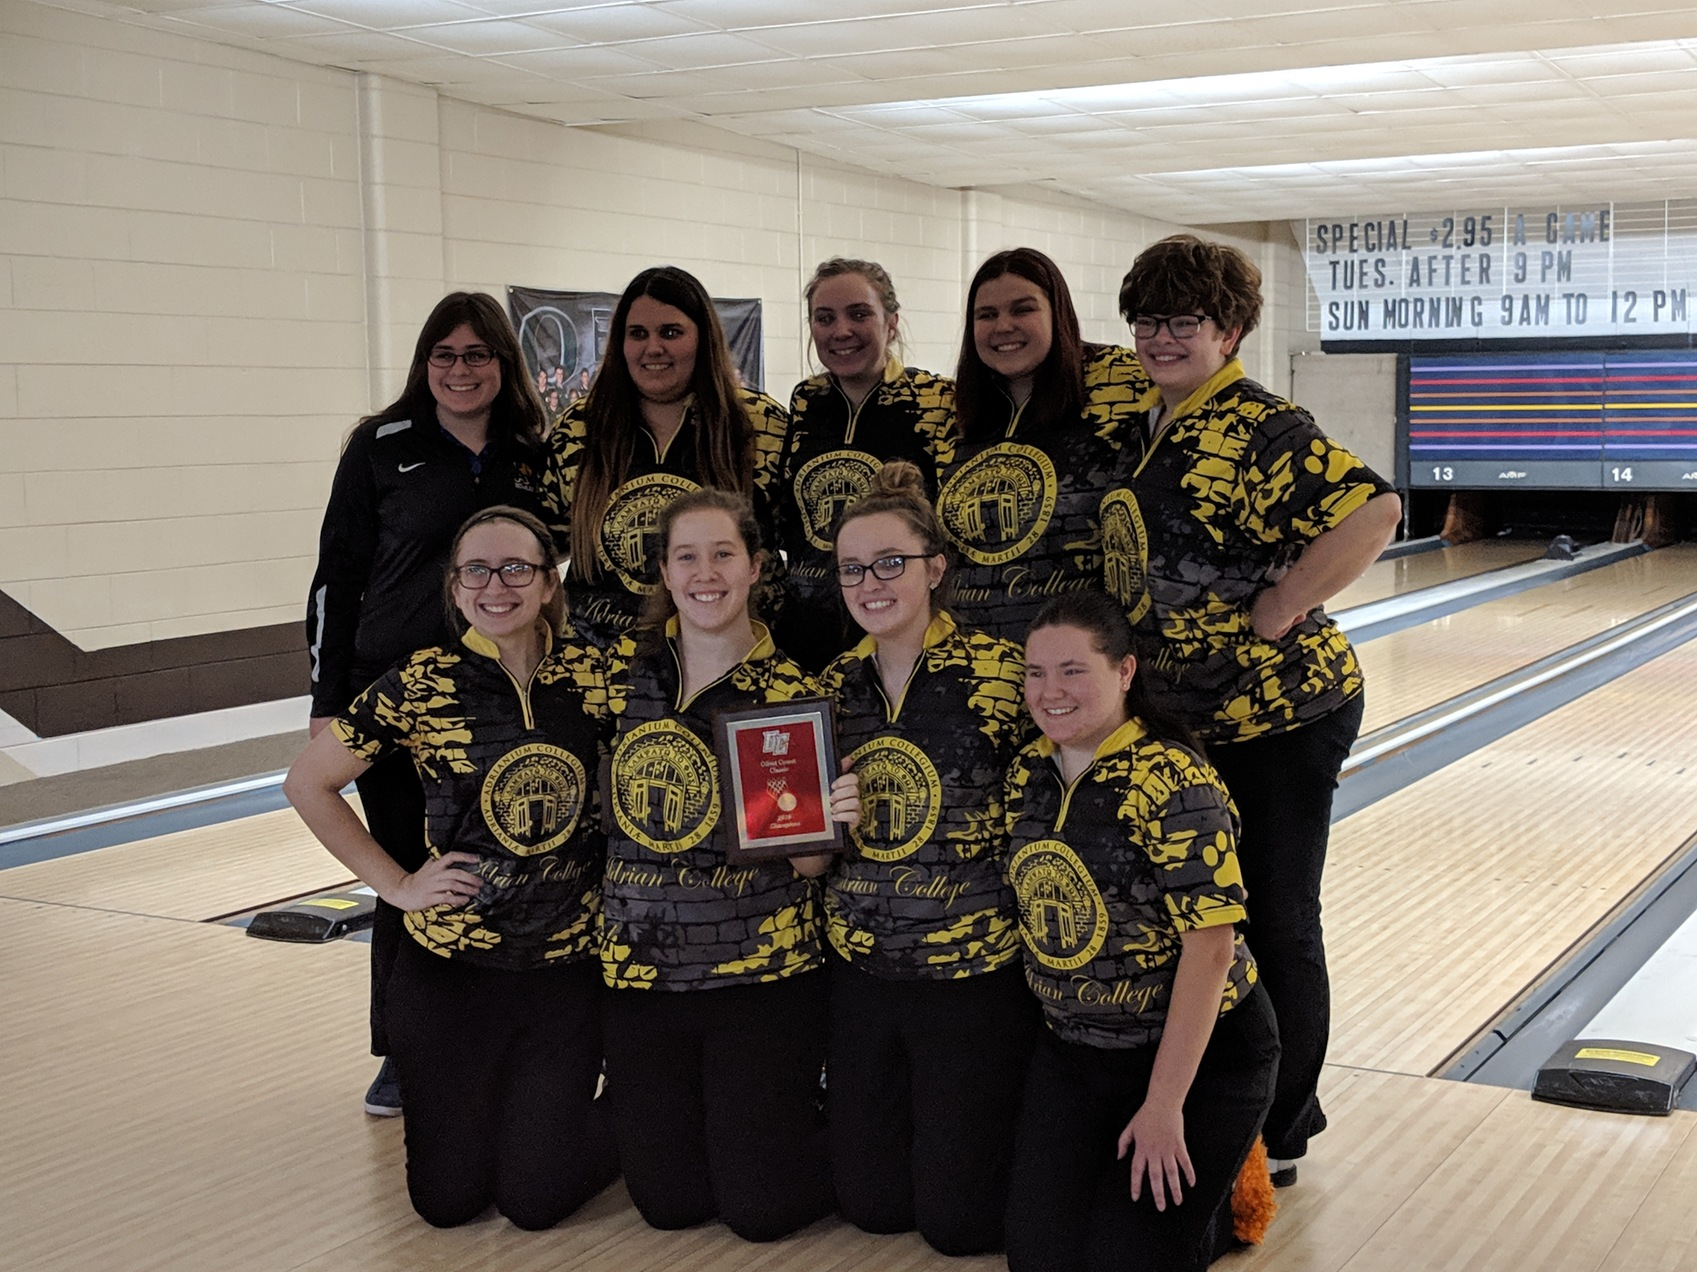 Adrian College is the 2018 Olivet Comets Classic women's bowling tournament champion. (Photo provided)